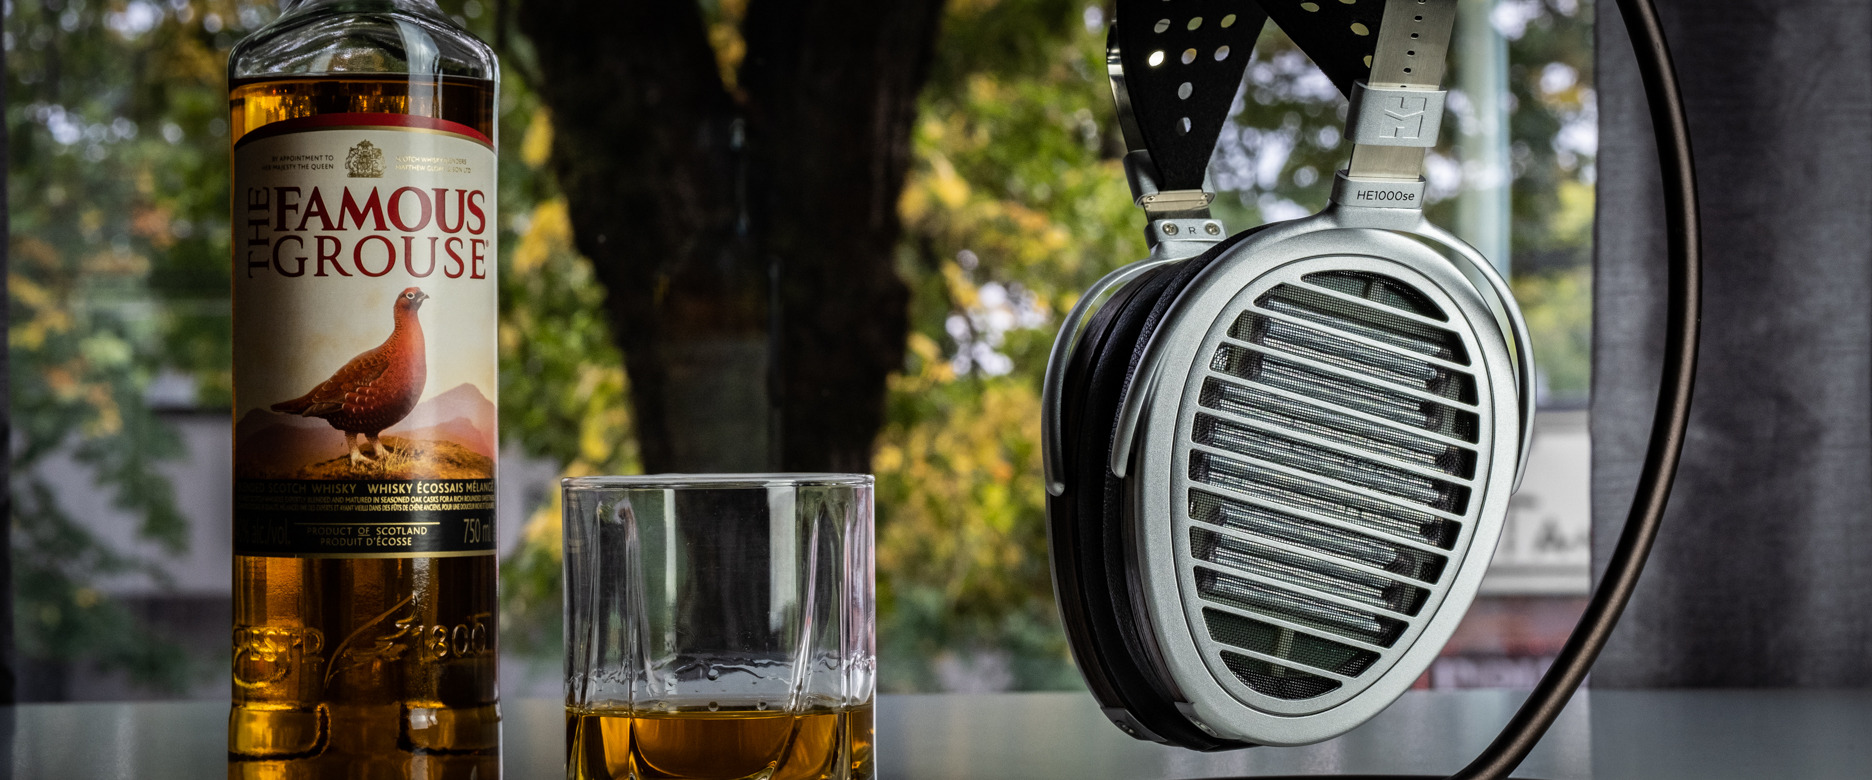 Hifiman HE1000se with Famous Grouse Whiskey